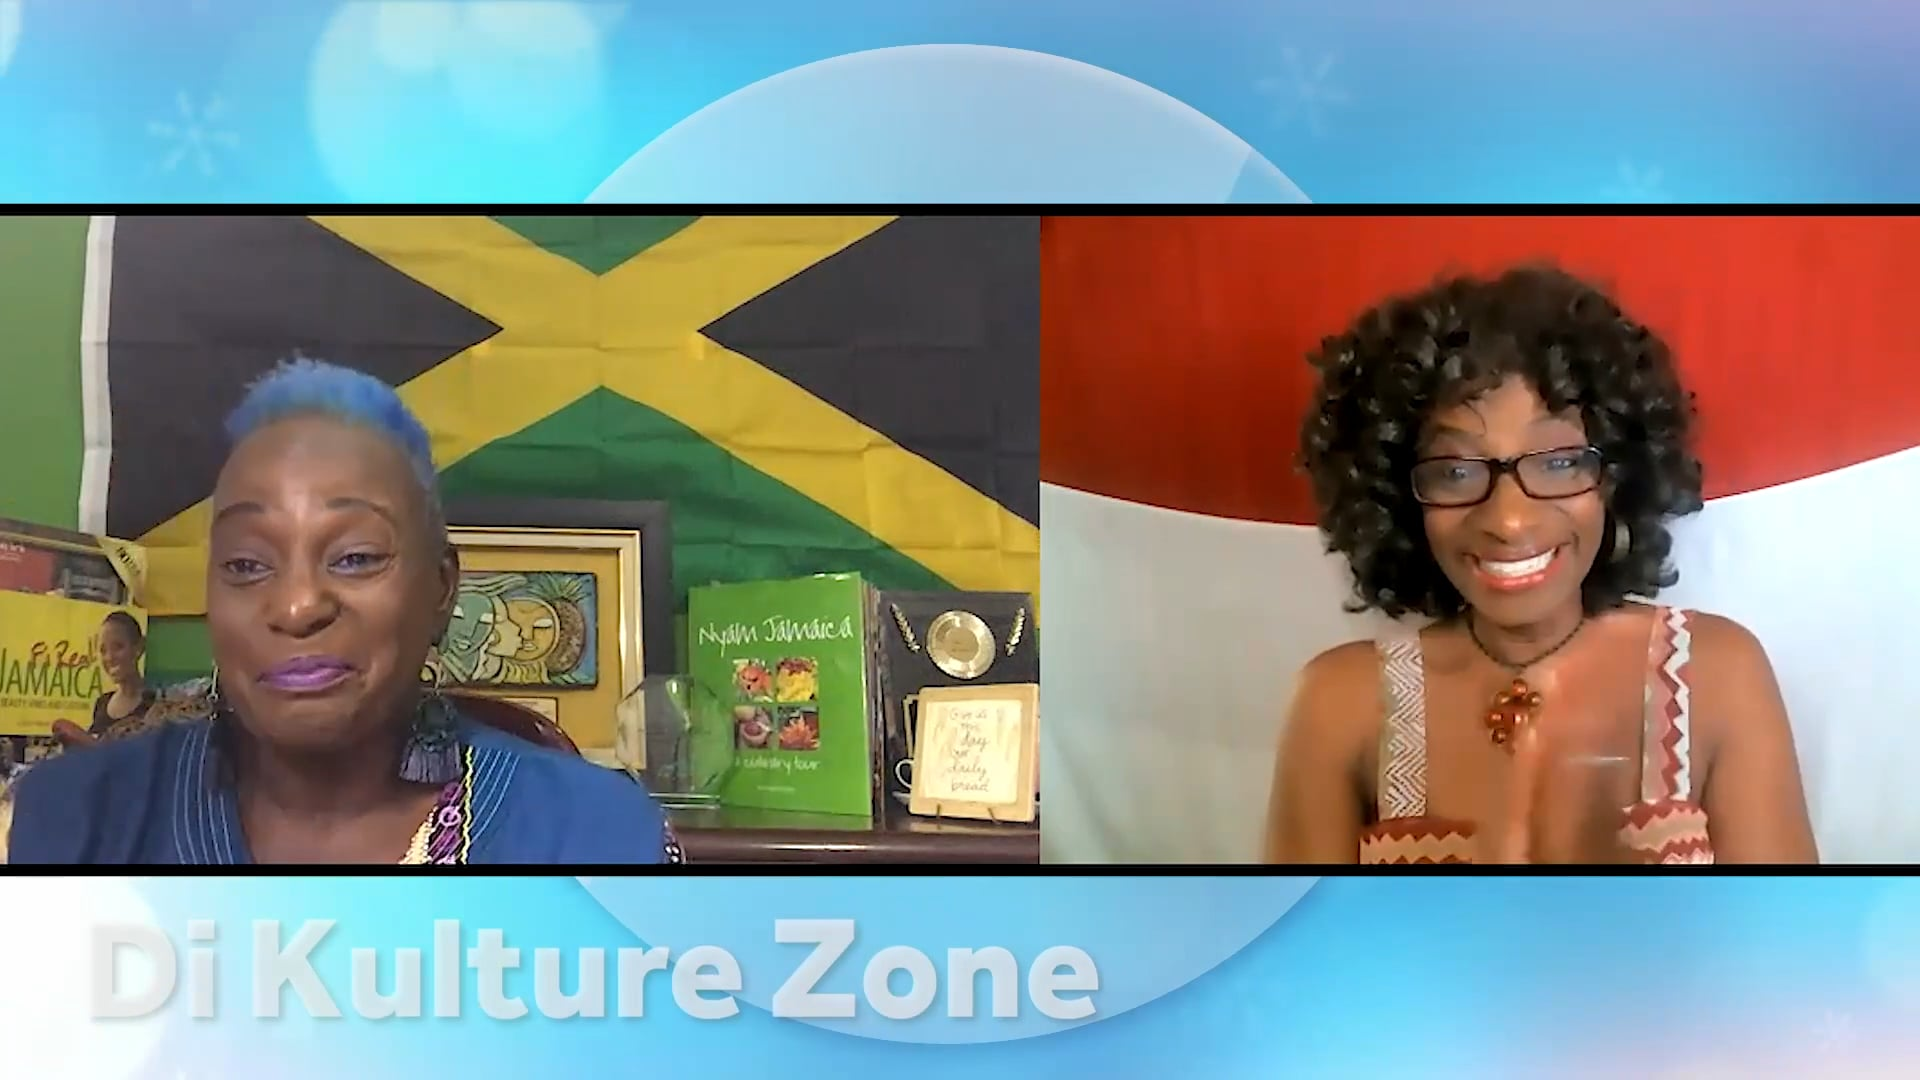 Di Kulture Zone explores food with Janet Crick, Jamaica Food Tours